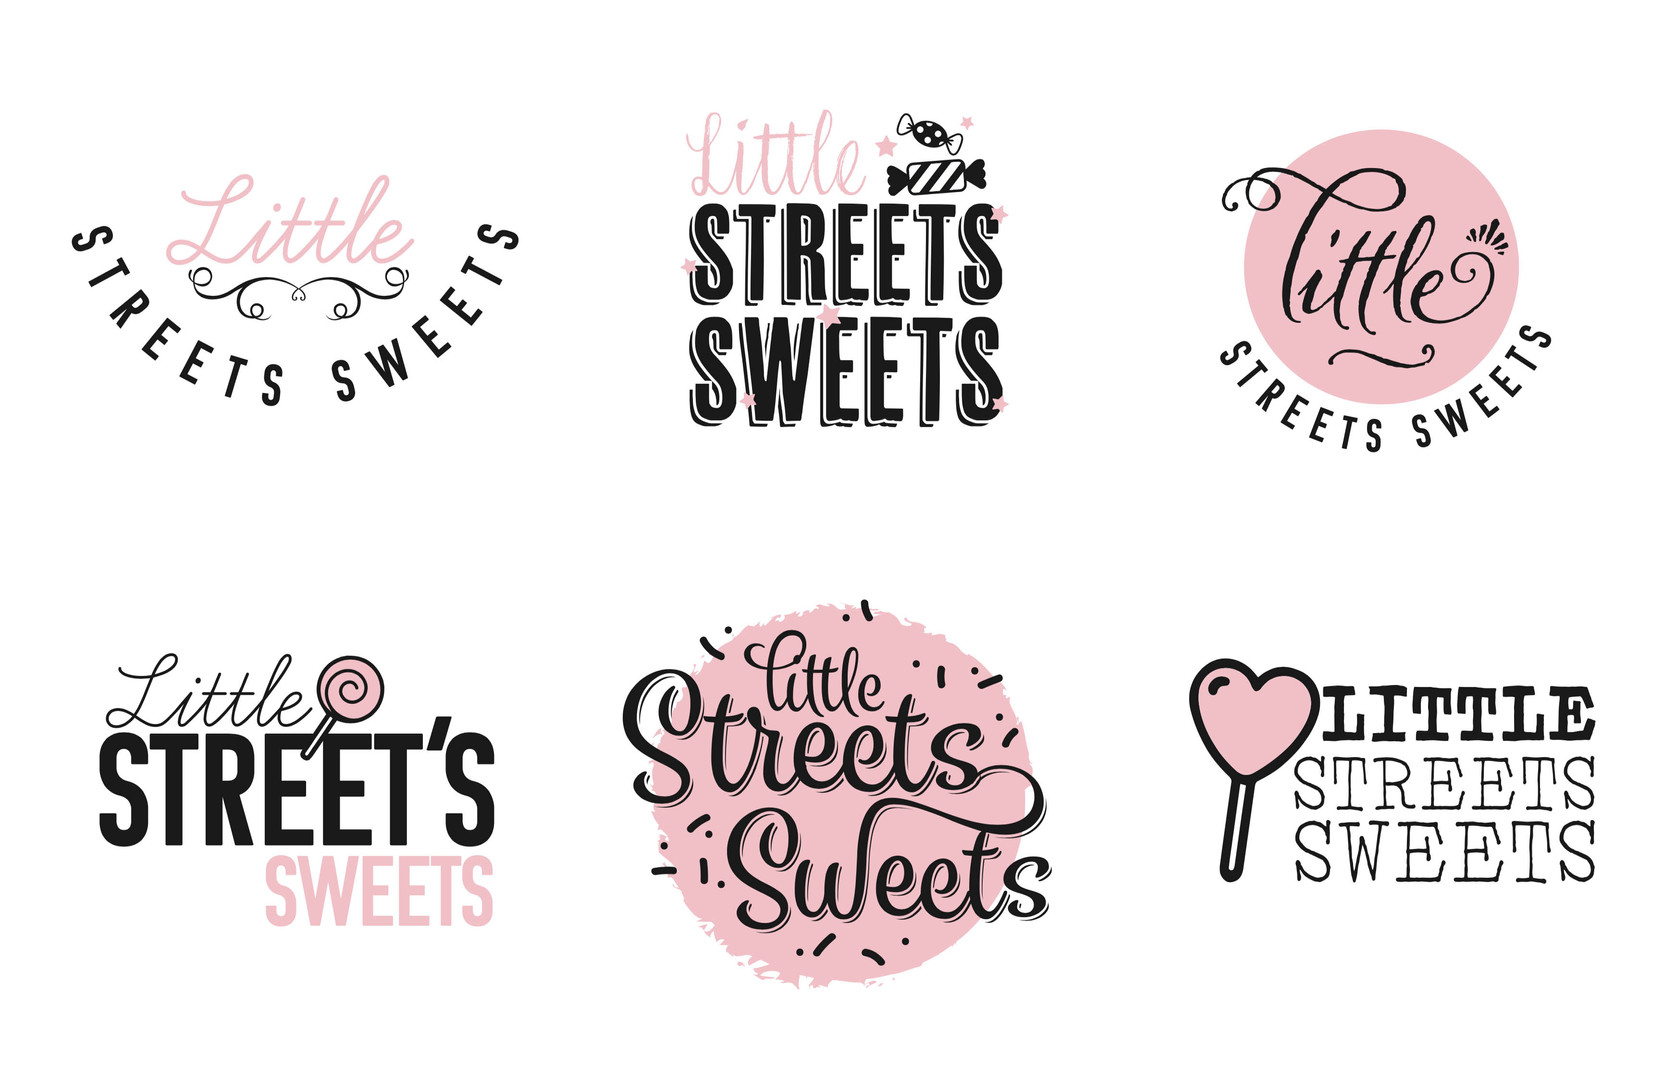 Little Streets Sweets